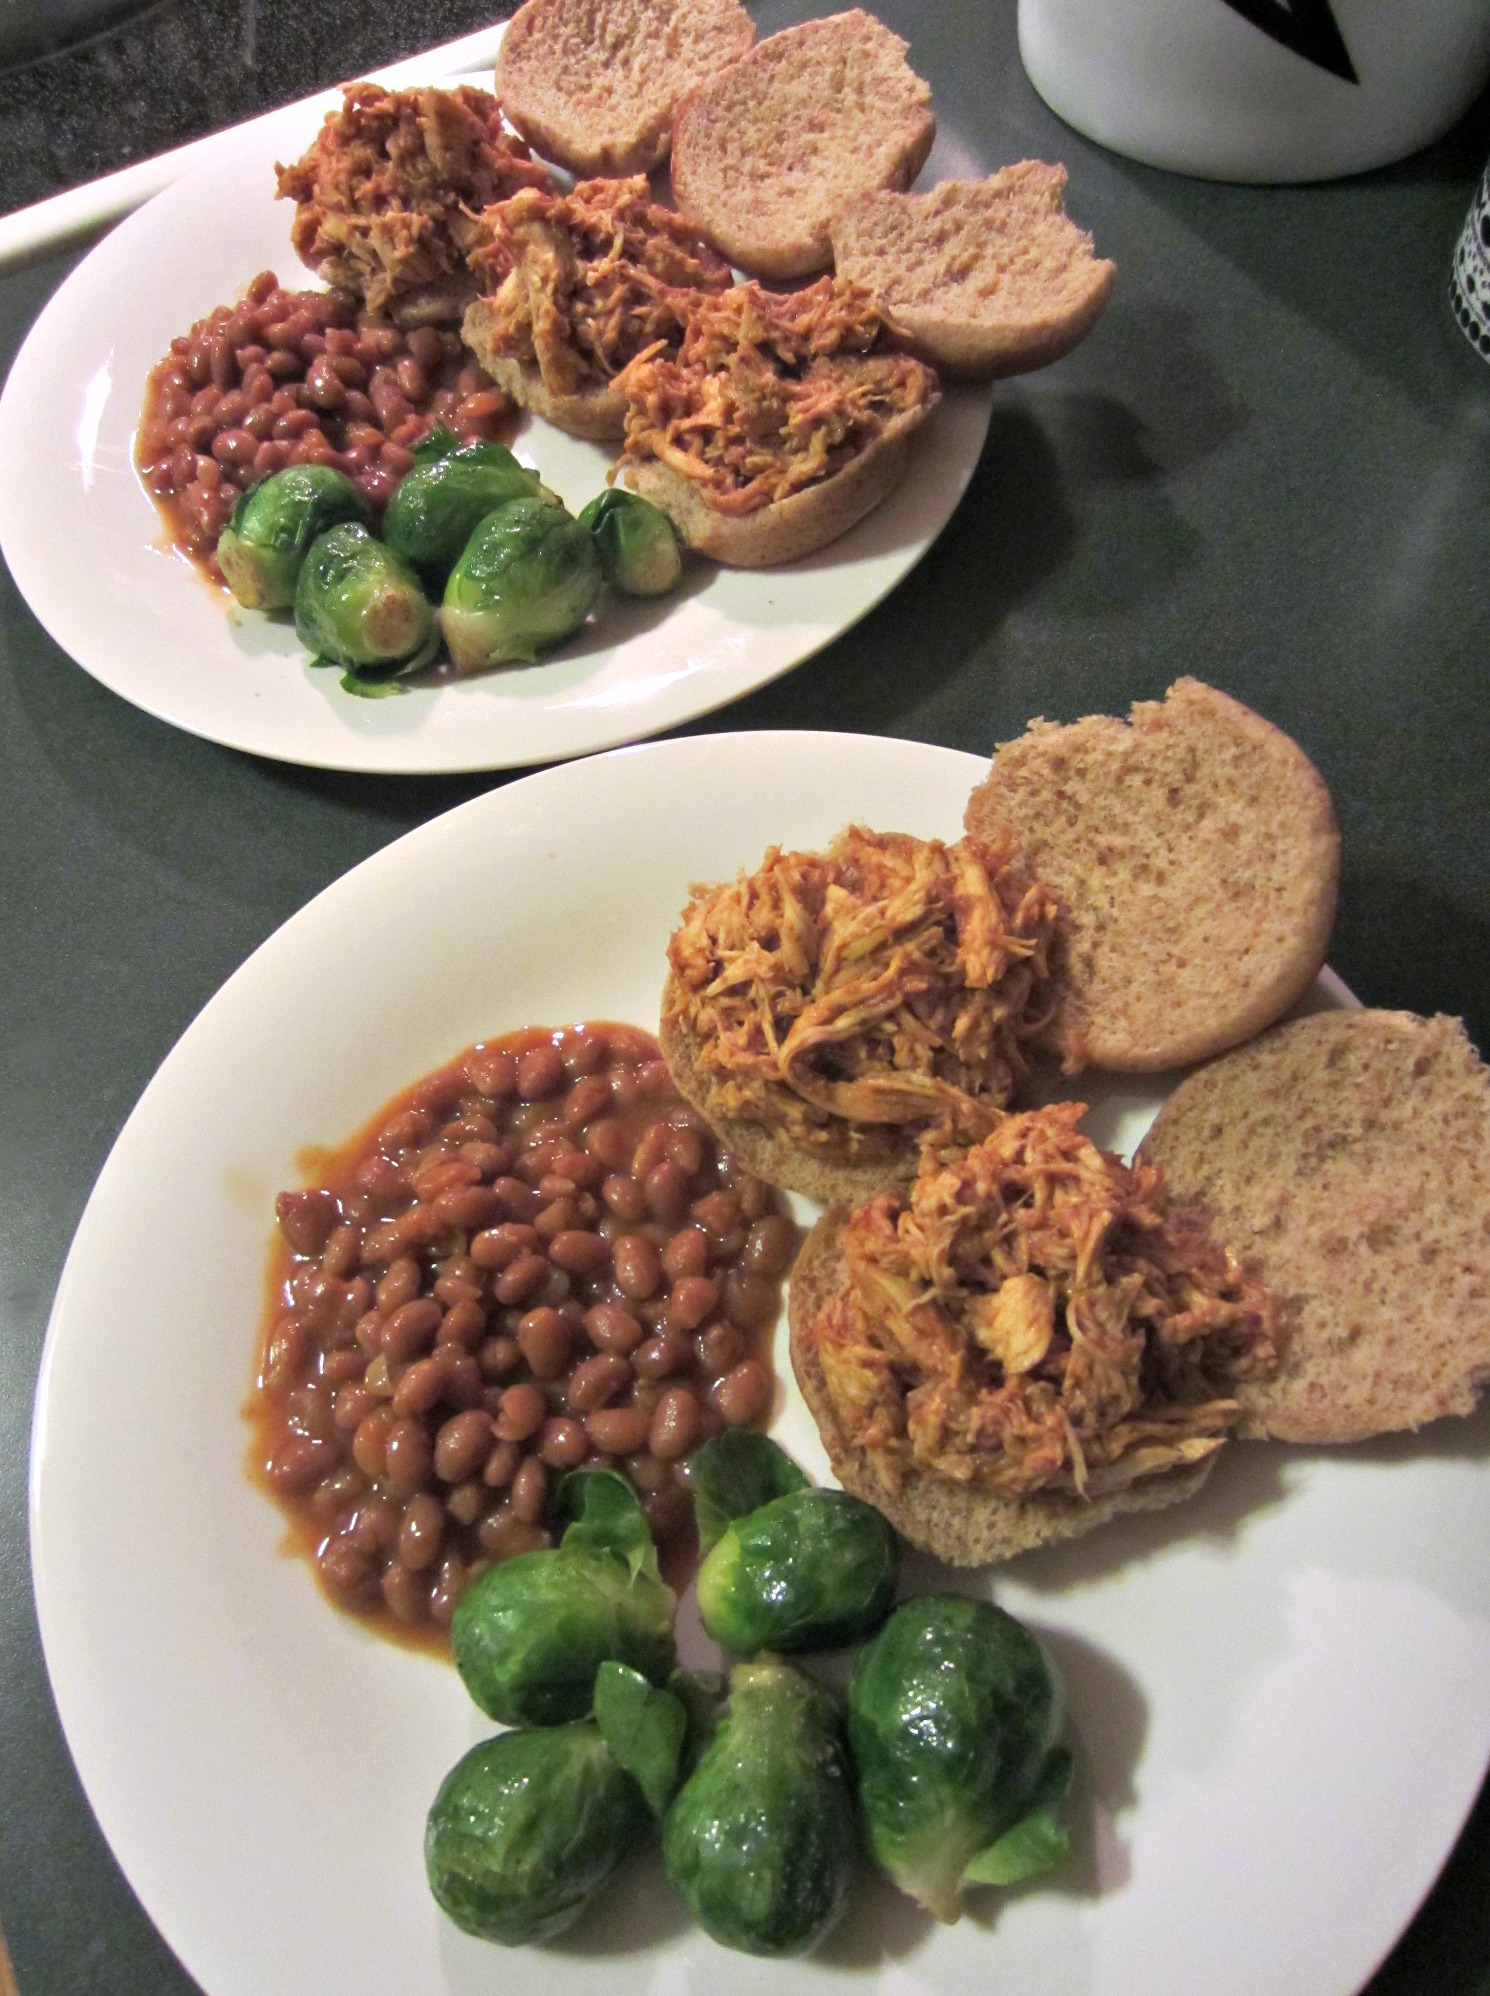 pulled bbq sliders with beans and brussels sprouts